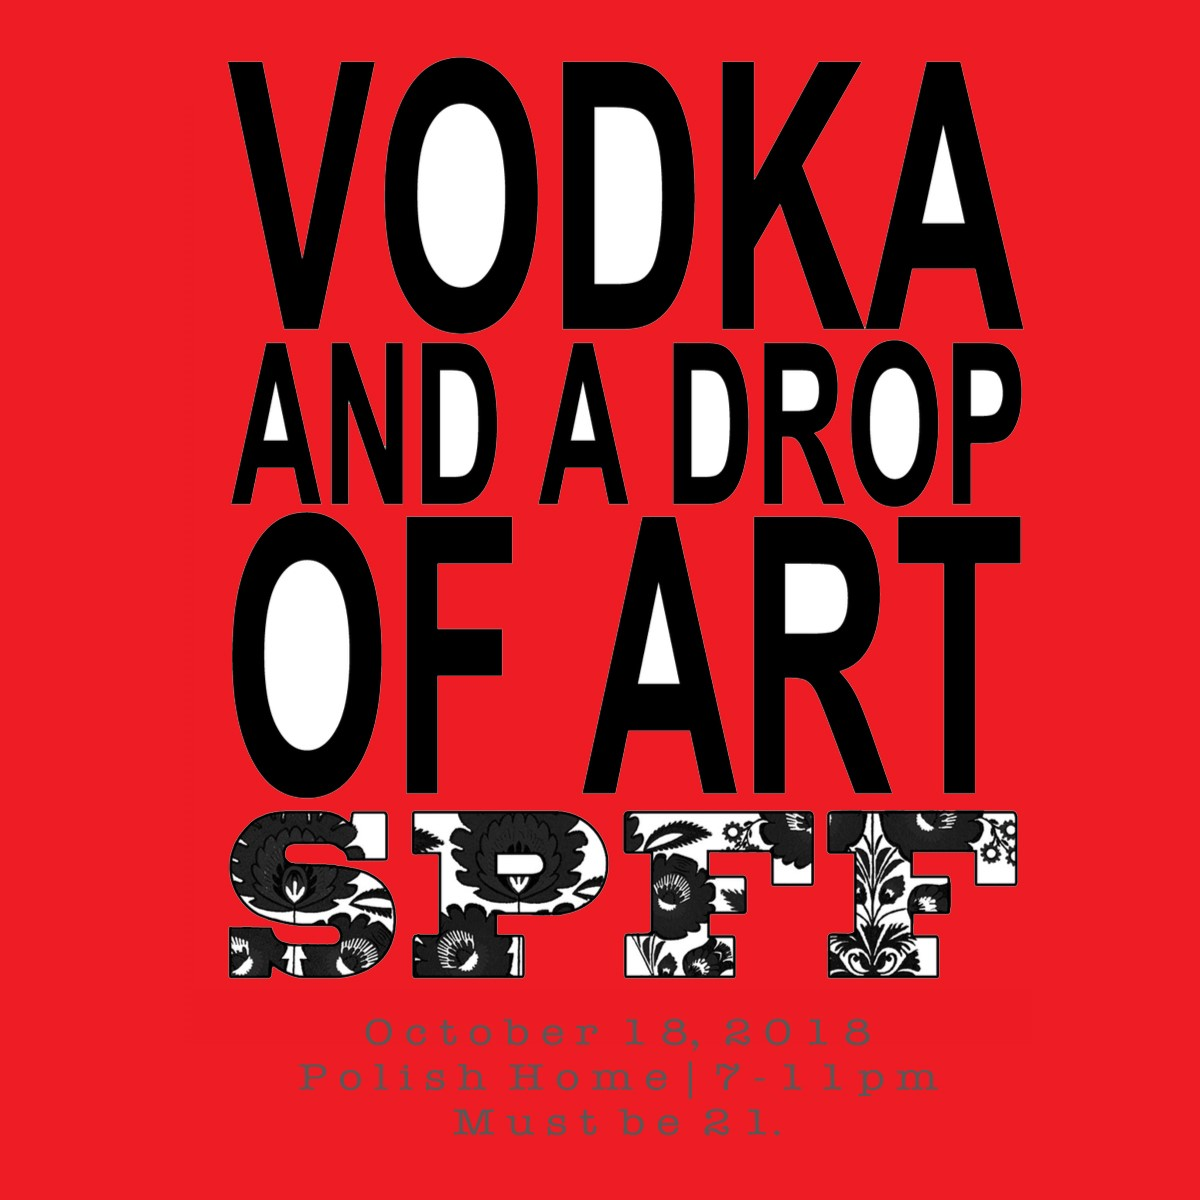 4th Annual Vodka Tasting to Kick Off the 26th Annual Seattle Polish Film Festival